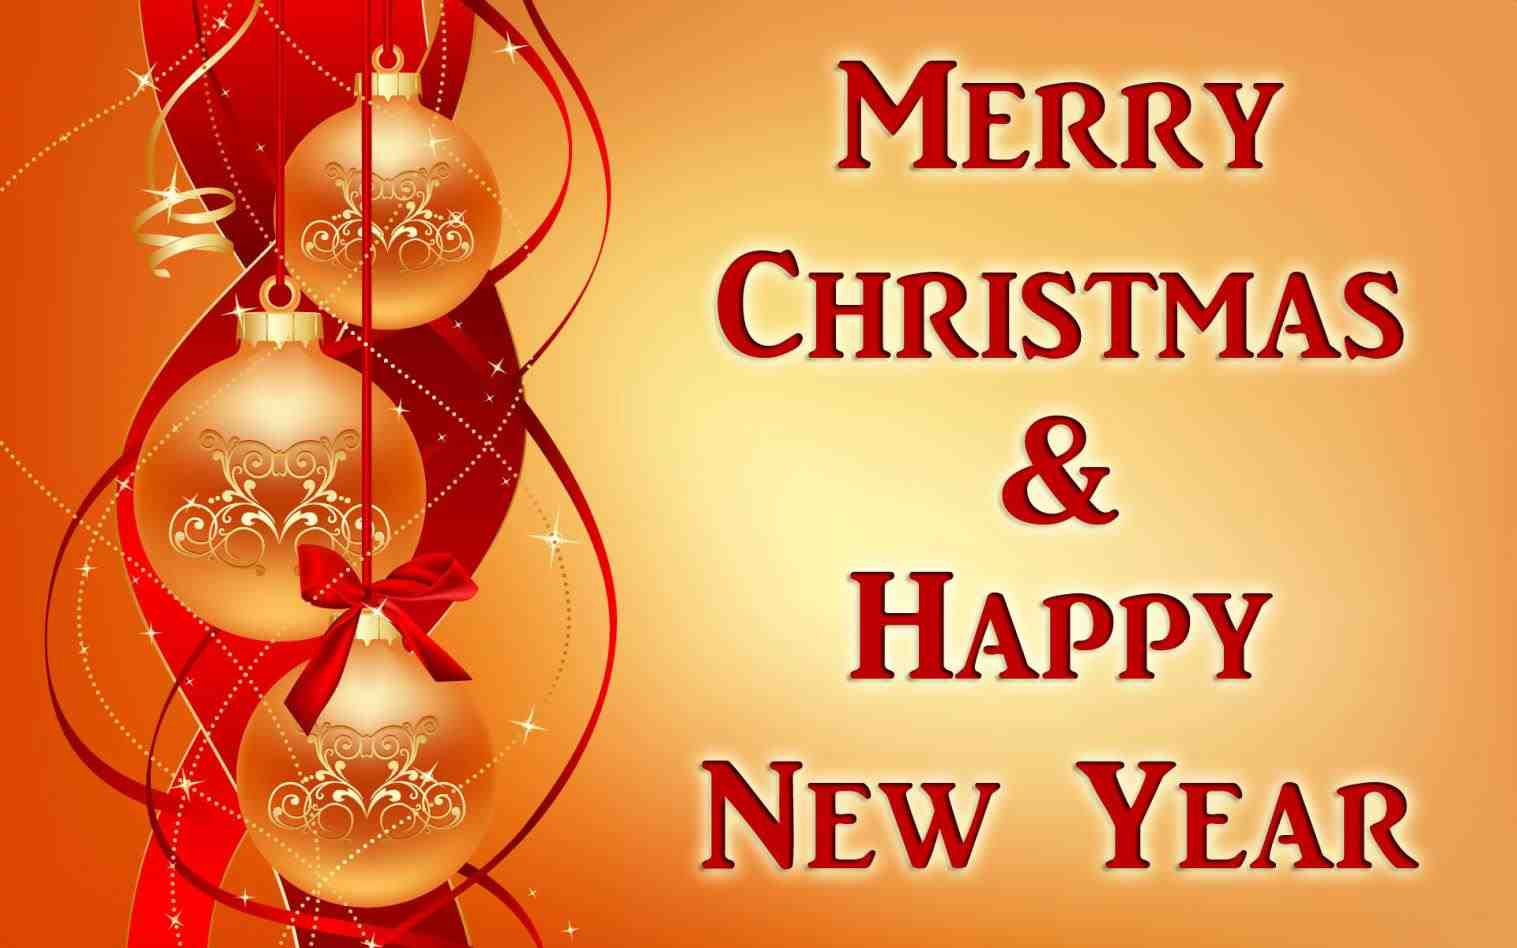 Merry Christmas And Happy New Year Wishes And Greetings